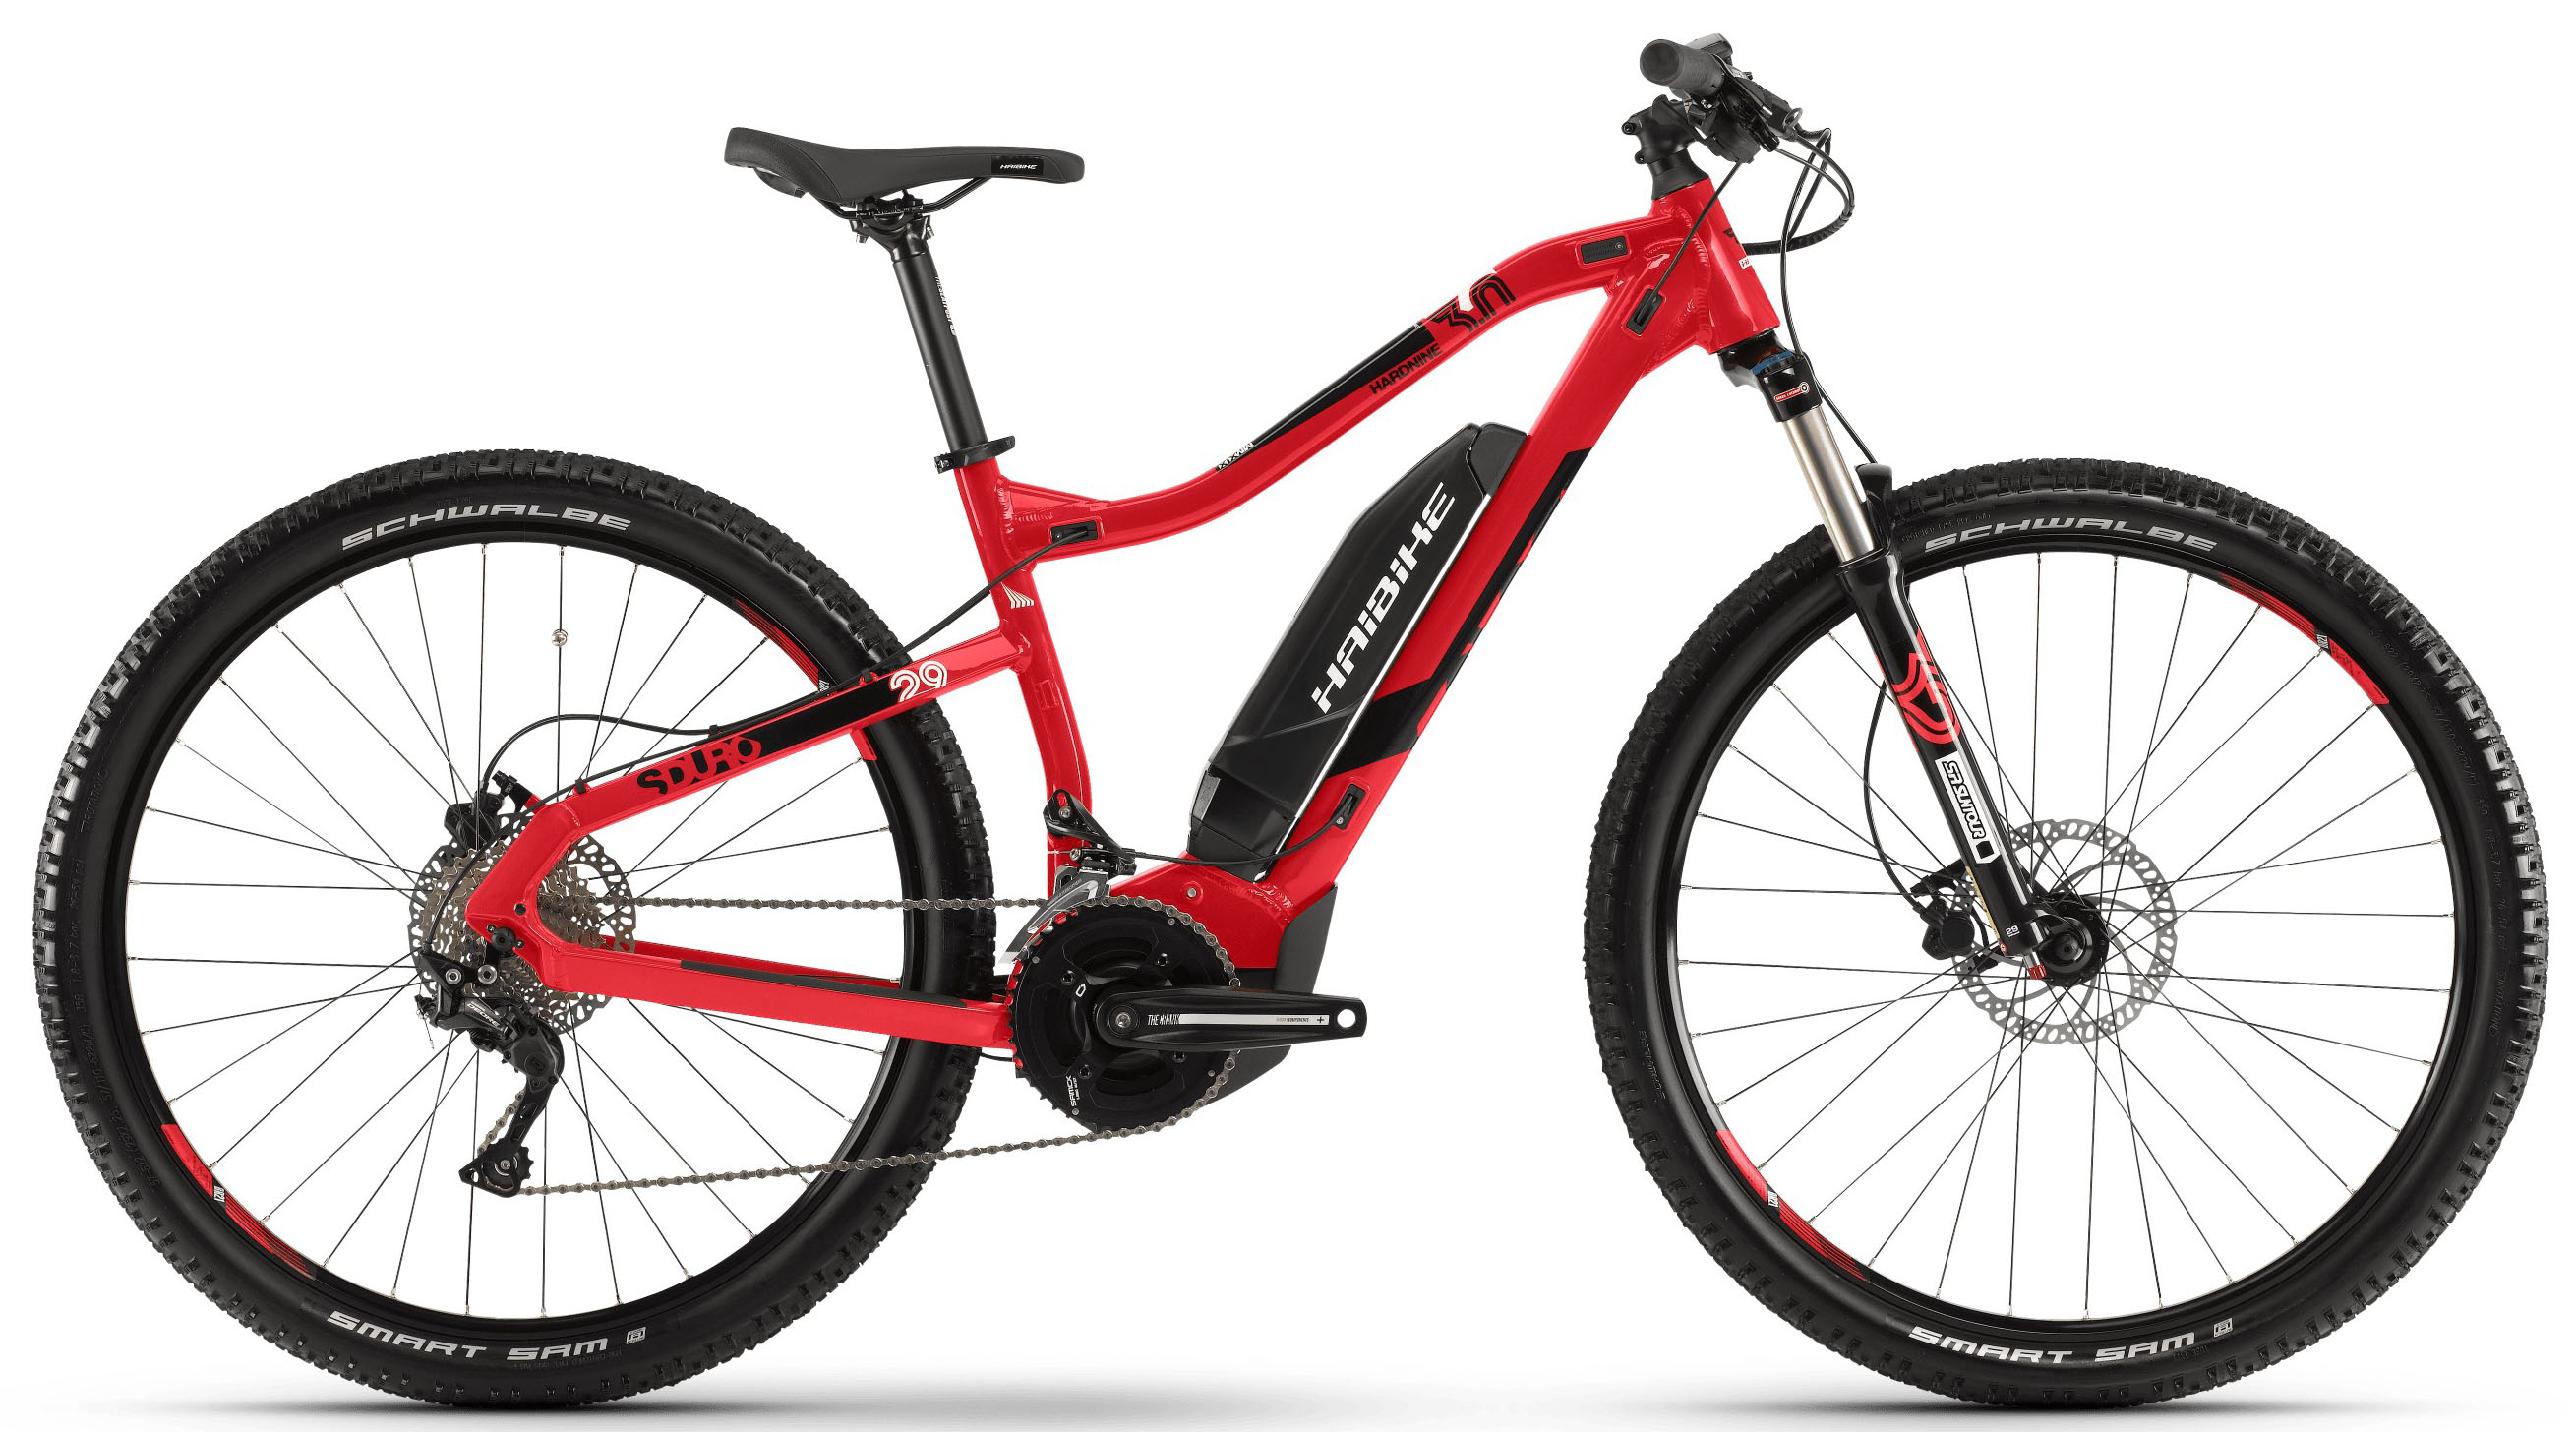 Велосипед Haibike SDURO HardNine 3.0 500Wh 20-G Deore 2019 велосипед haibike sduro trekking 4 0 he 400wh 10s deore 2018